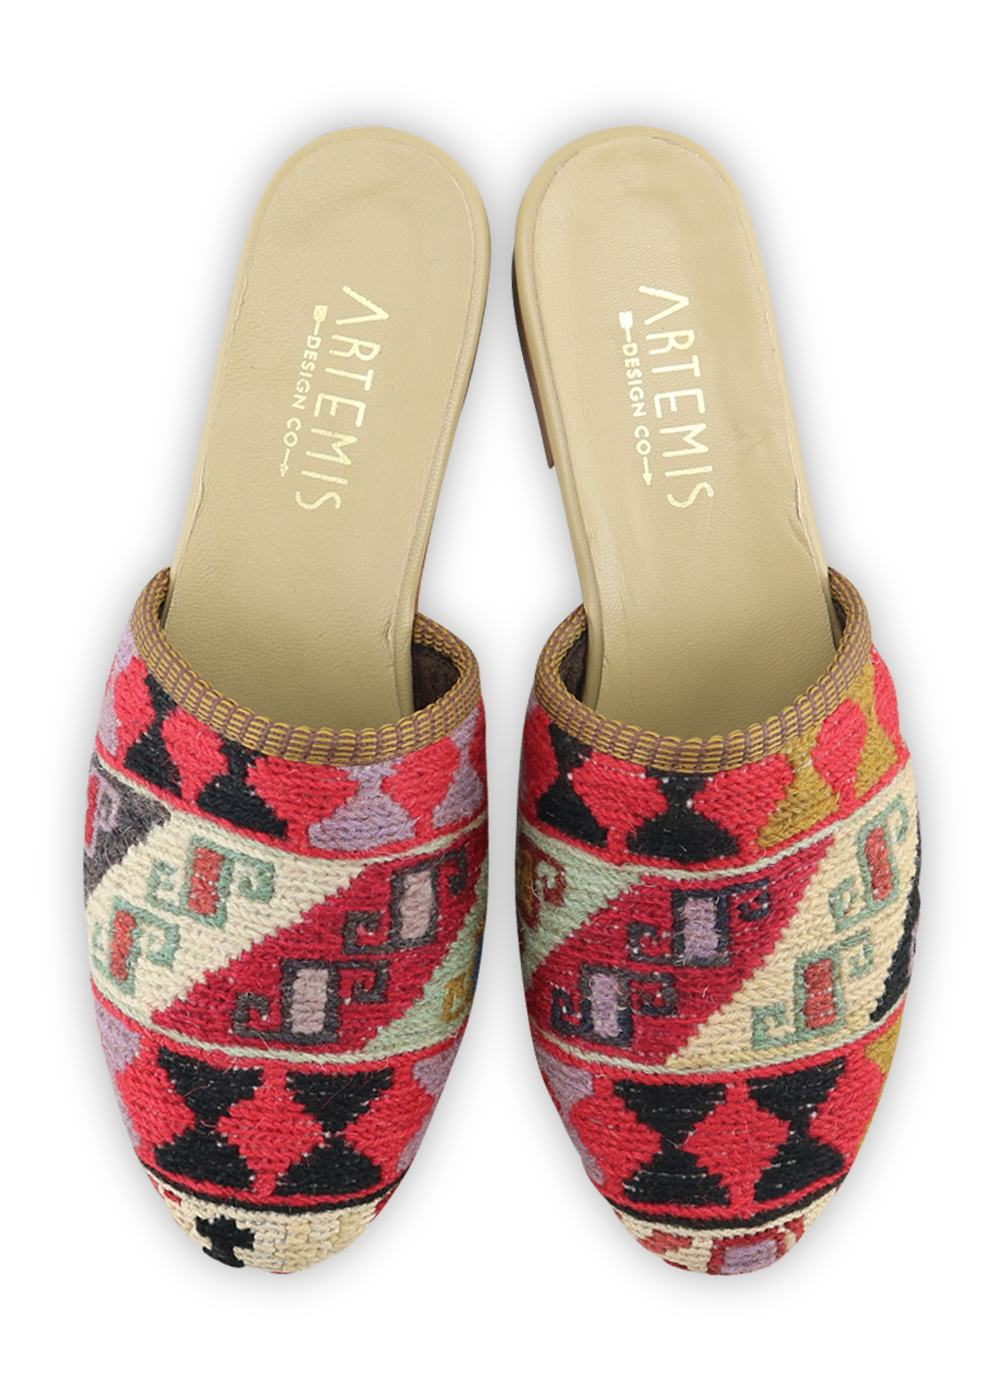 Archived Women's - Women's Sumak Kilim Slides - Size 38